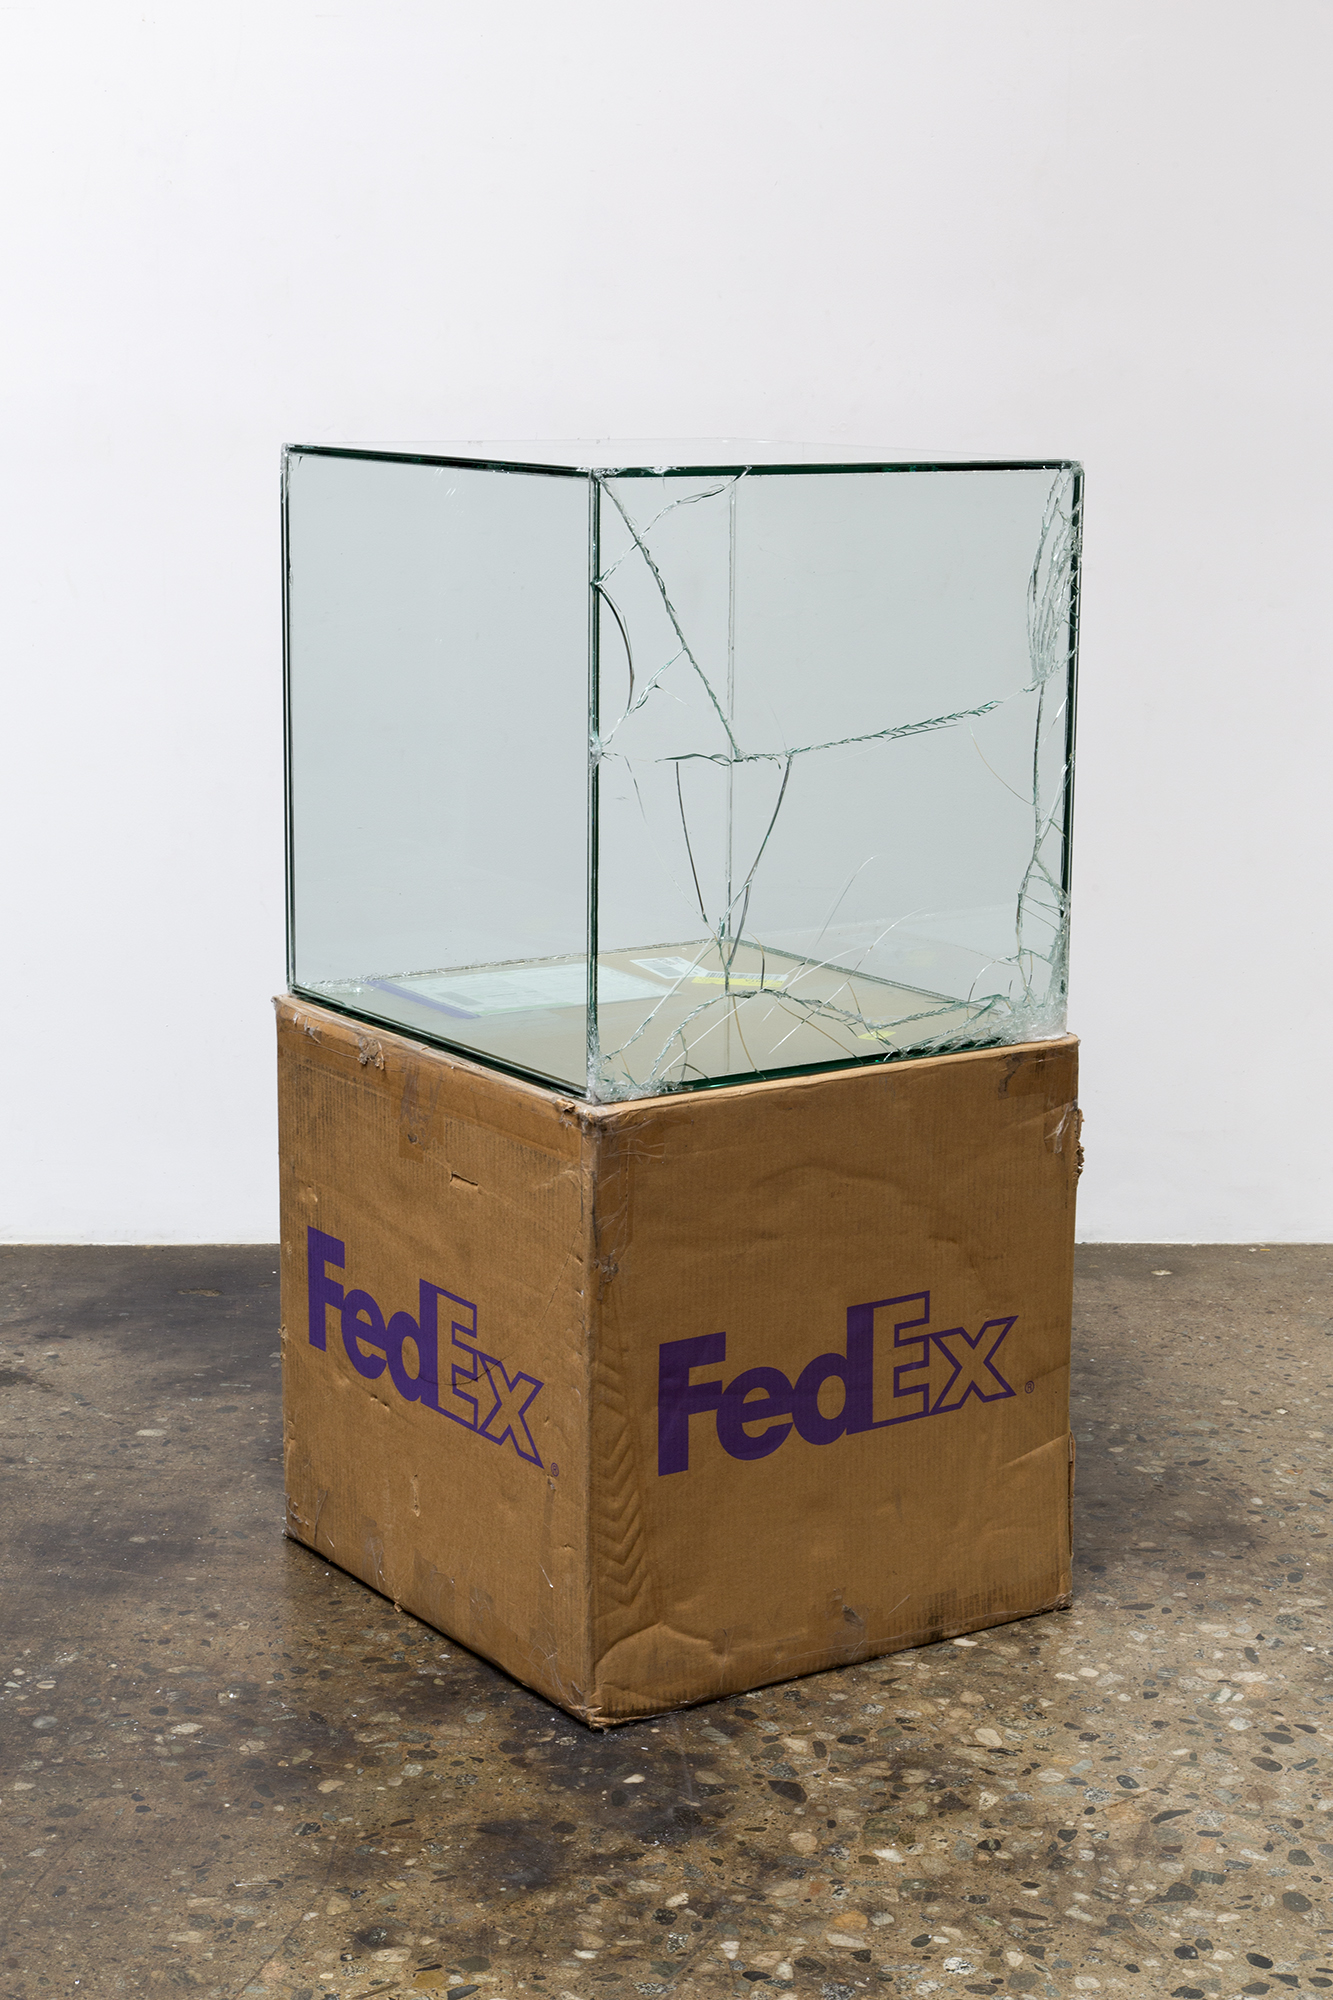 FedEx® Large Kraft Box  © 2008 FEDEX 330510 REV 6/08 GP, International Priority, Los Angeles–Tokyo trk#778608484821, March 9–13, 2017, International Priority, Tokyo–Los Angeles trk#805795452126, July 13–14, 2017   2017–  Laminated glass, FedEx shipping box, accrued FedEx shipping and tracking labels, silicone, metal, tape  24 x 24 x 24 inches   FedEx Glass Works, 2007–    Transparencies, 2017